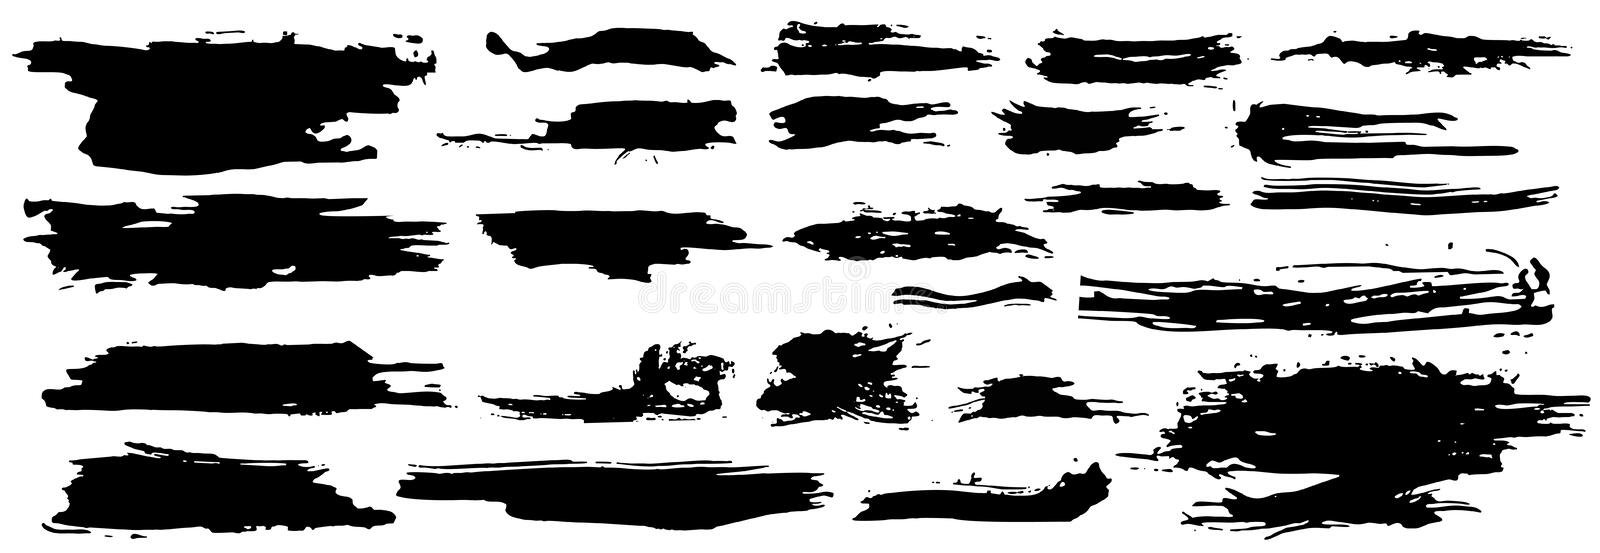 Vector set different grunge brush strokes.Collection of artistic ink black paint hand made creative brush stroke isolated on white stock illustration